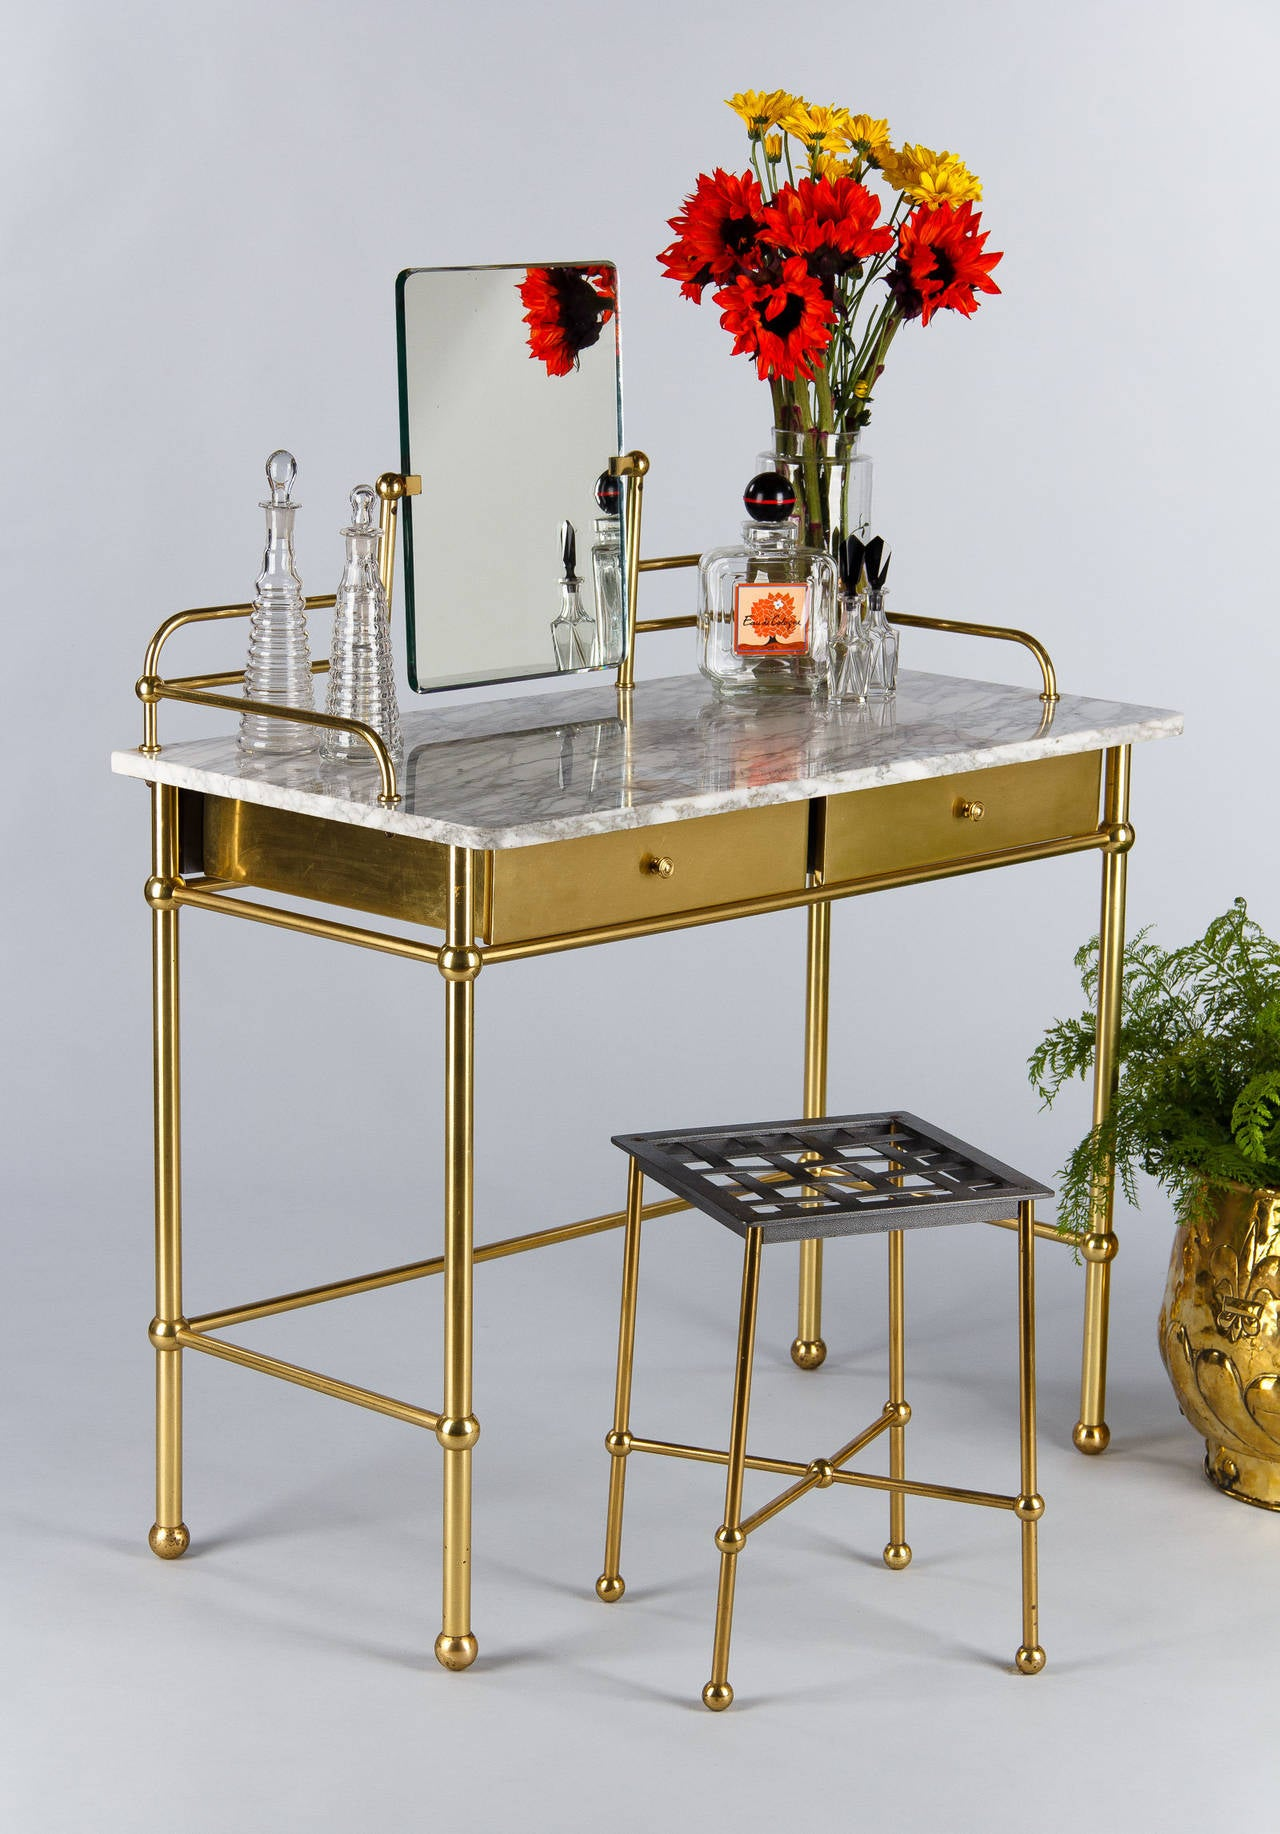 Mirrored Vanity Table And Stool: Vintage French Brass And Marble Vanity Table With Stool By